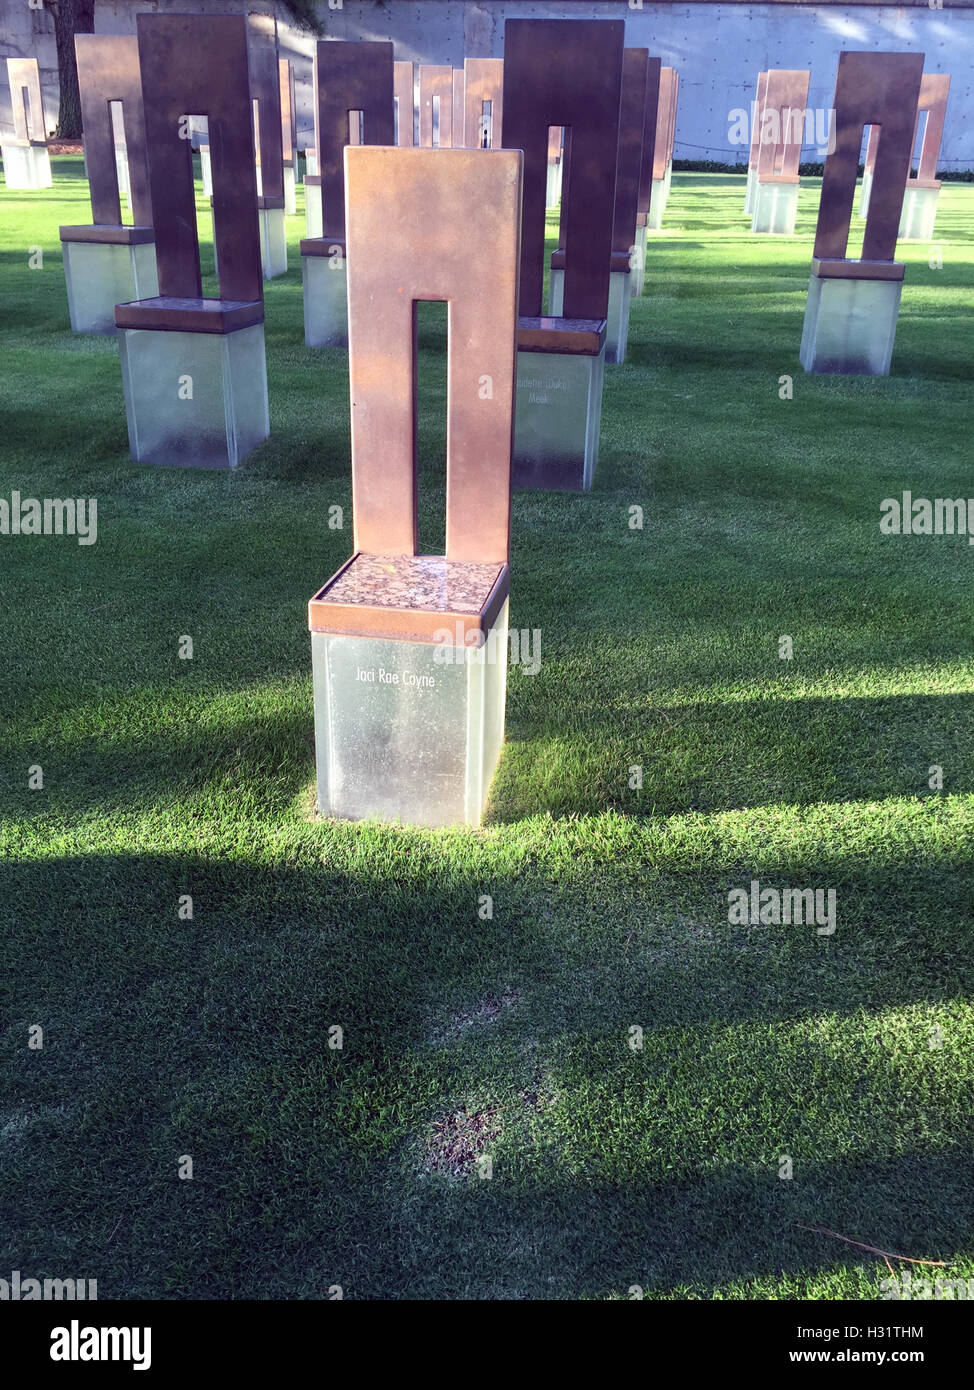 Symbolic Office Chair at the Oklahoma City Bombing Memorial Stock Photo